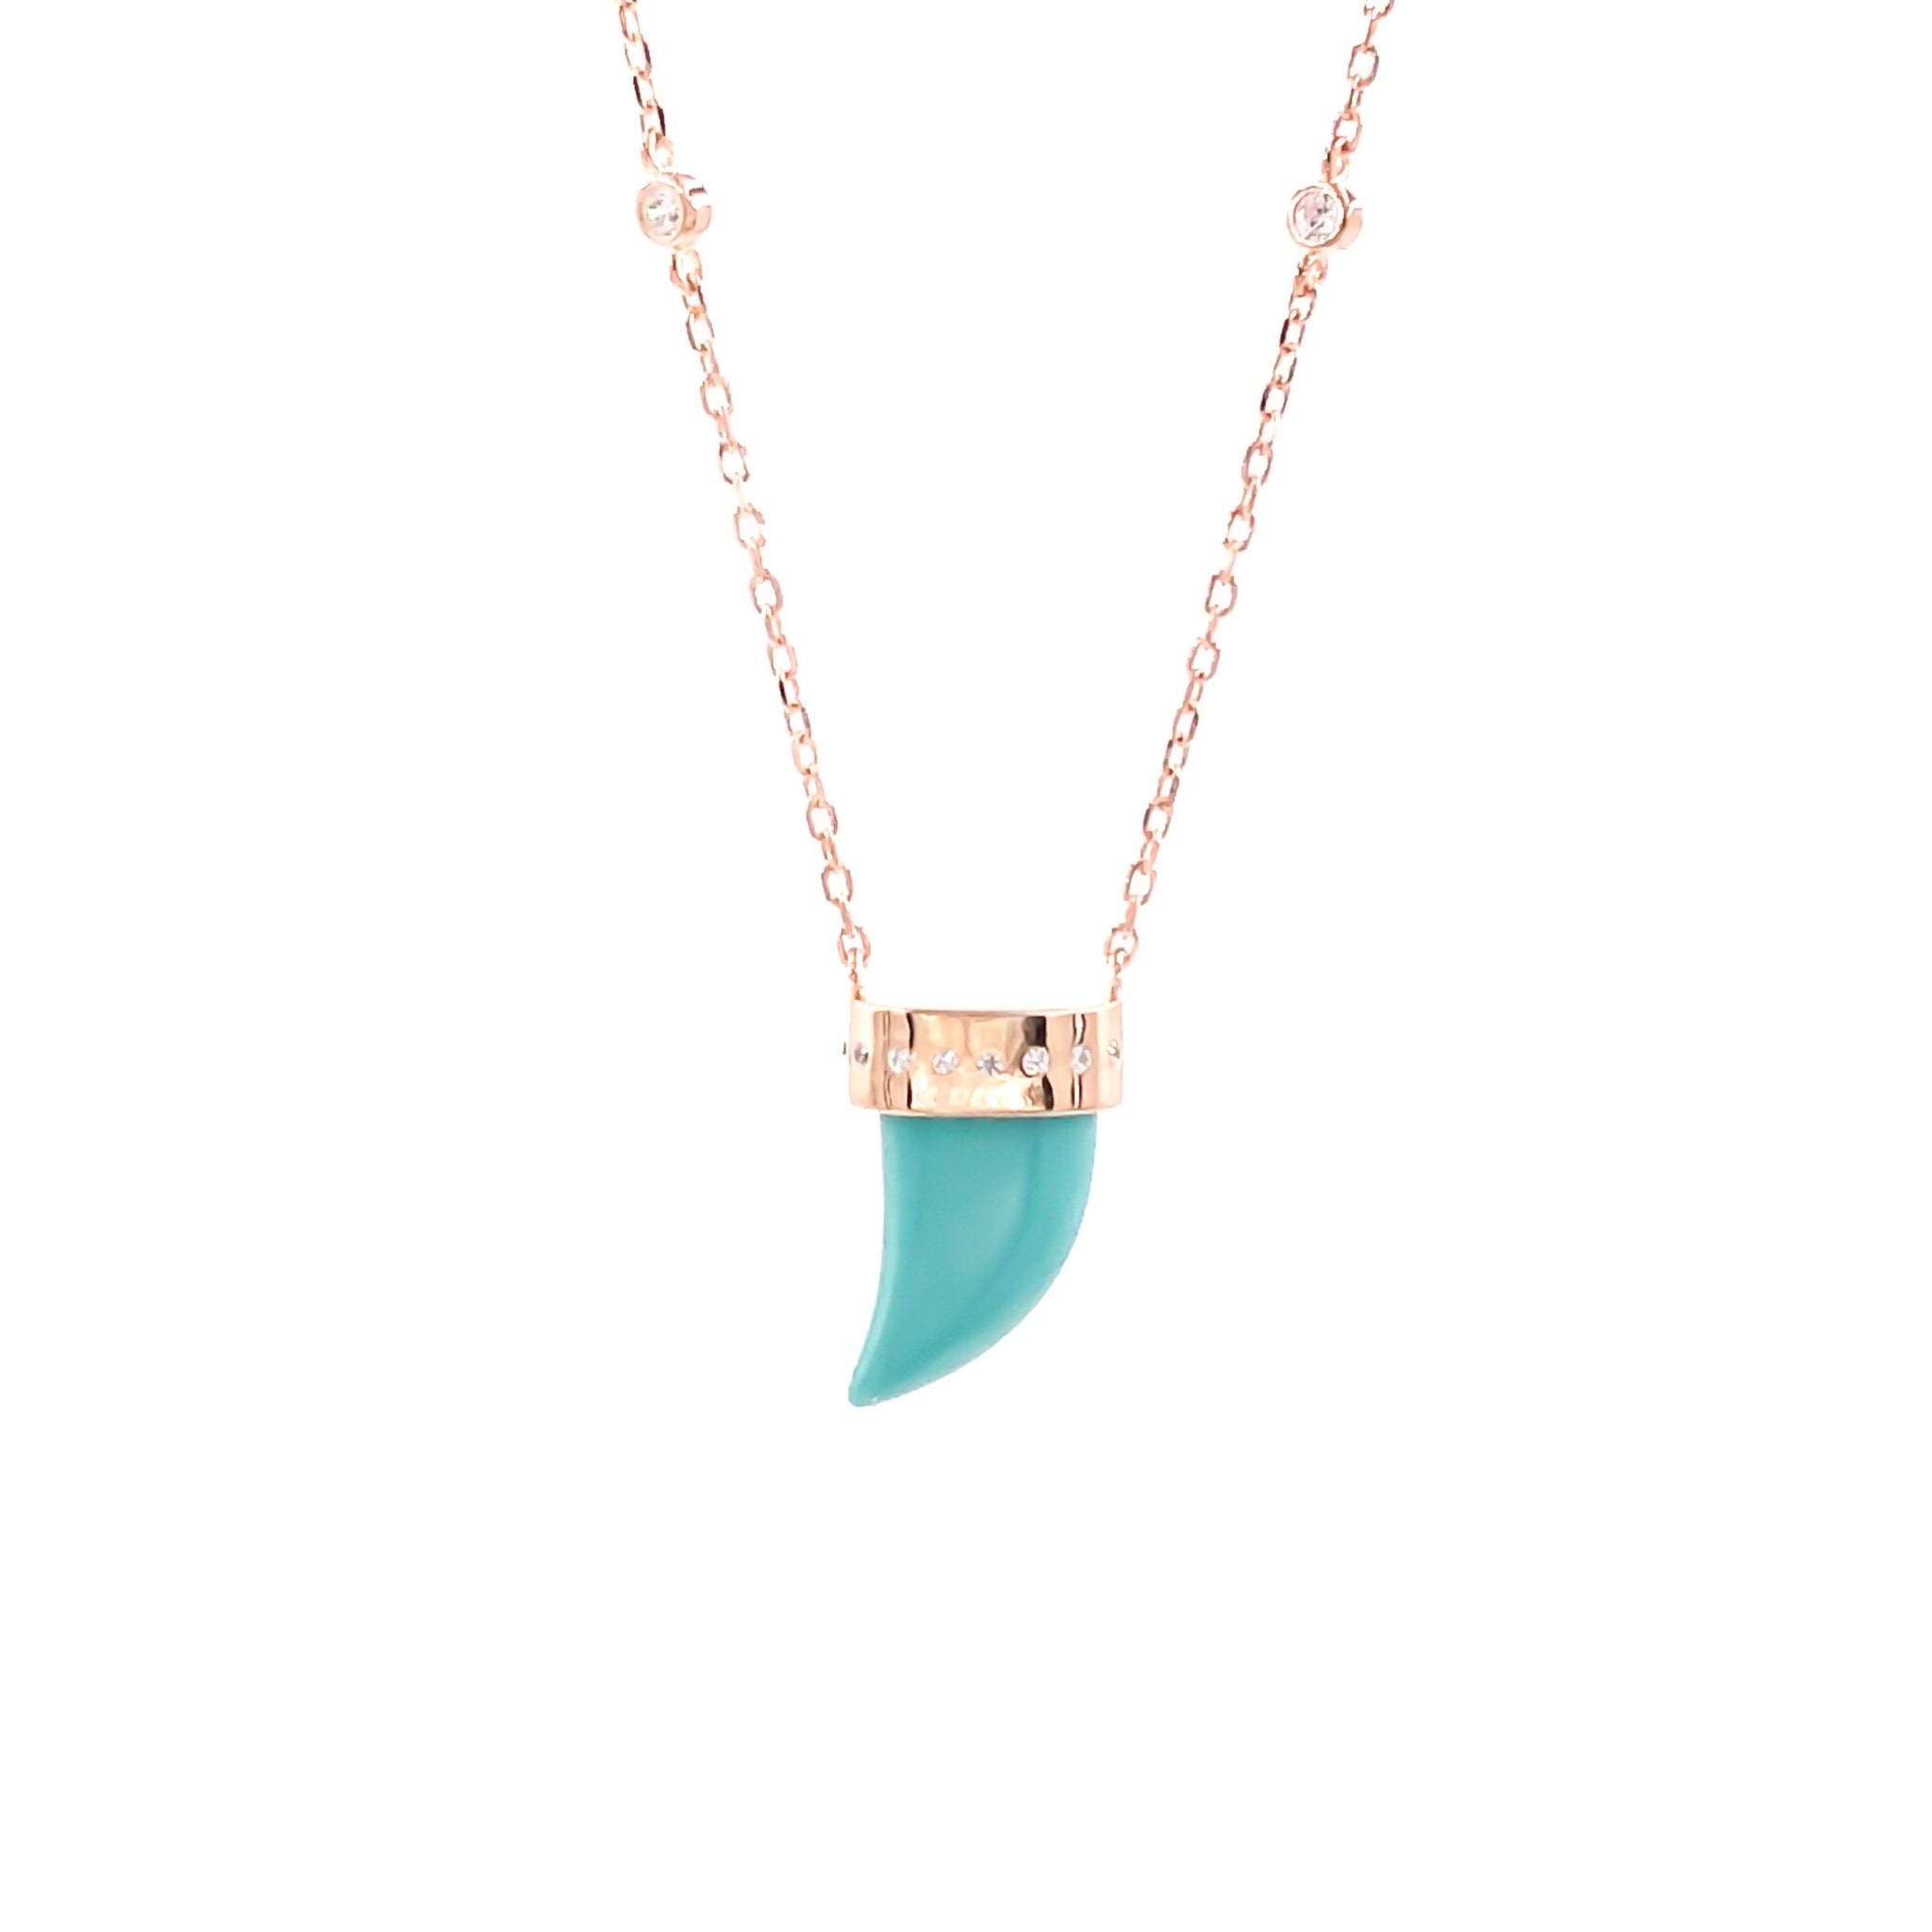 Turquoise Ivory Gemstone Chain Necklace